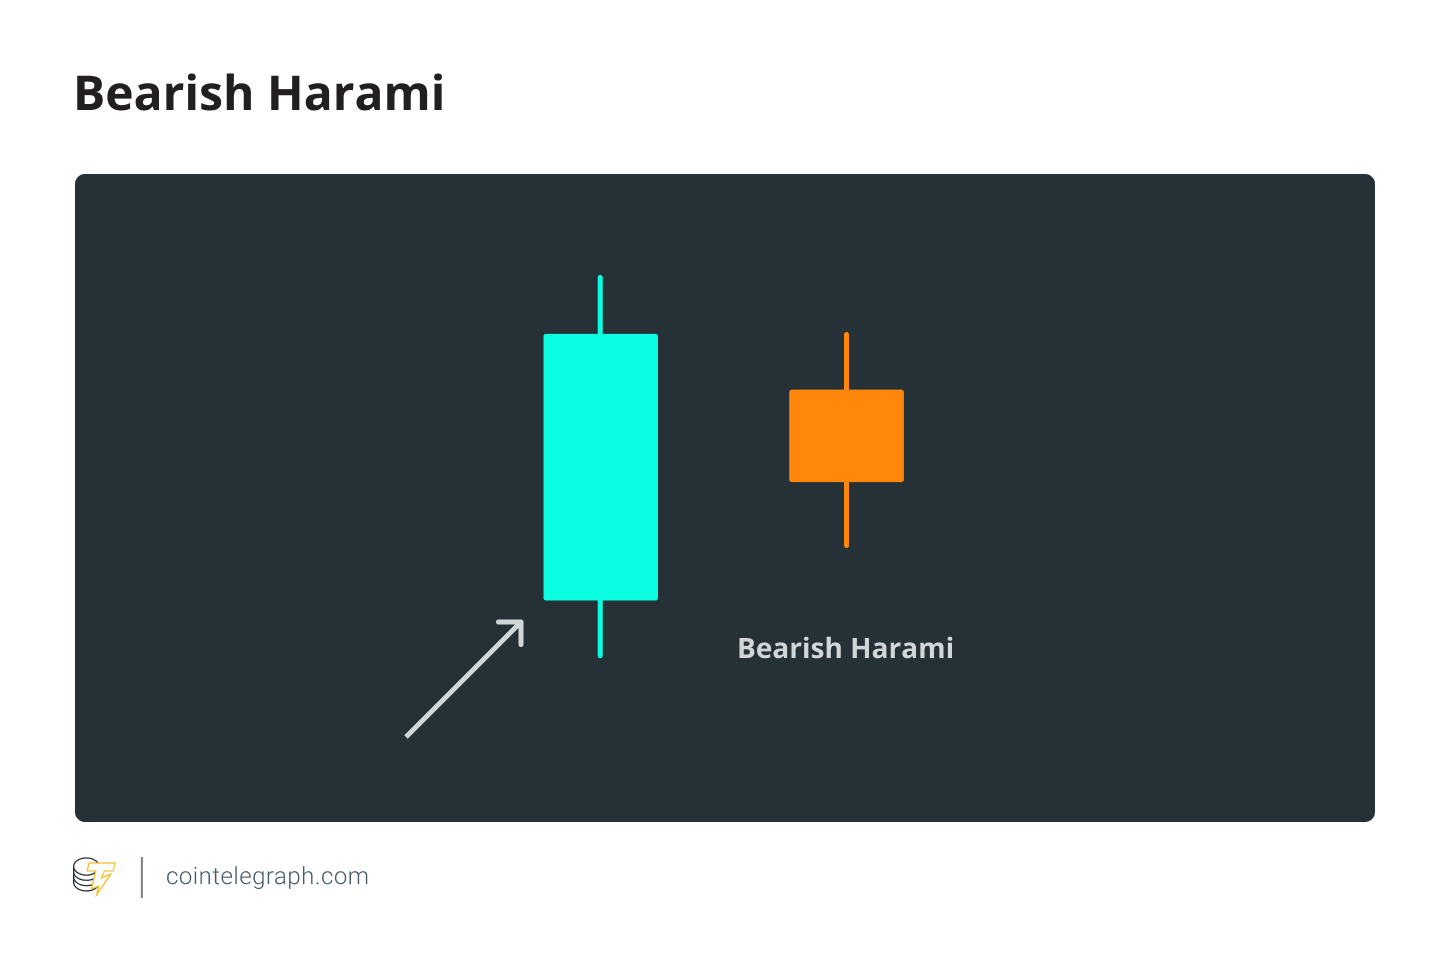 Bearish Harami